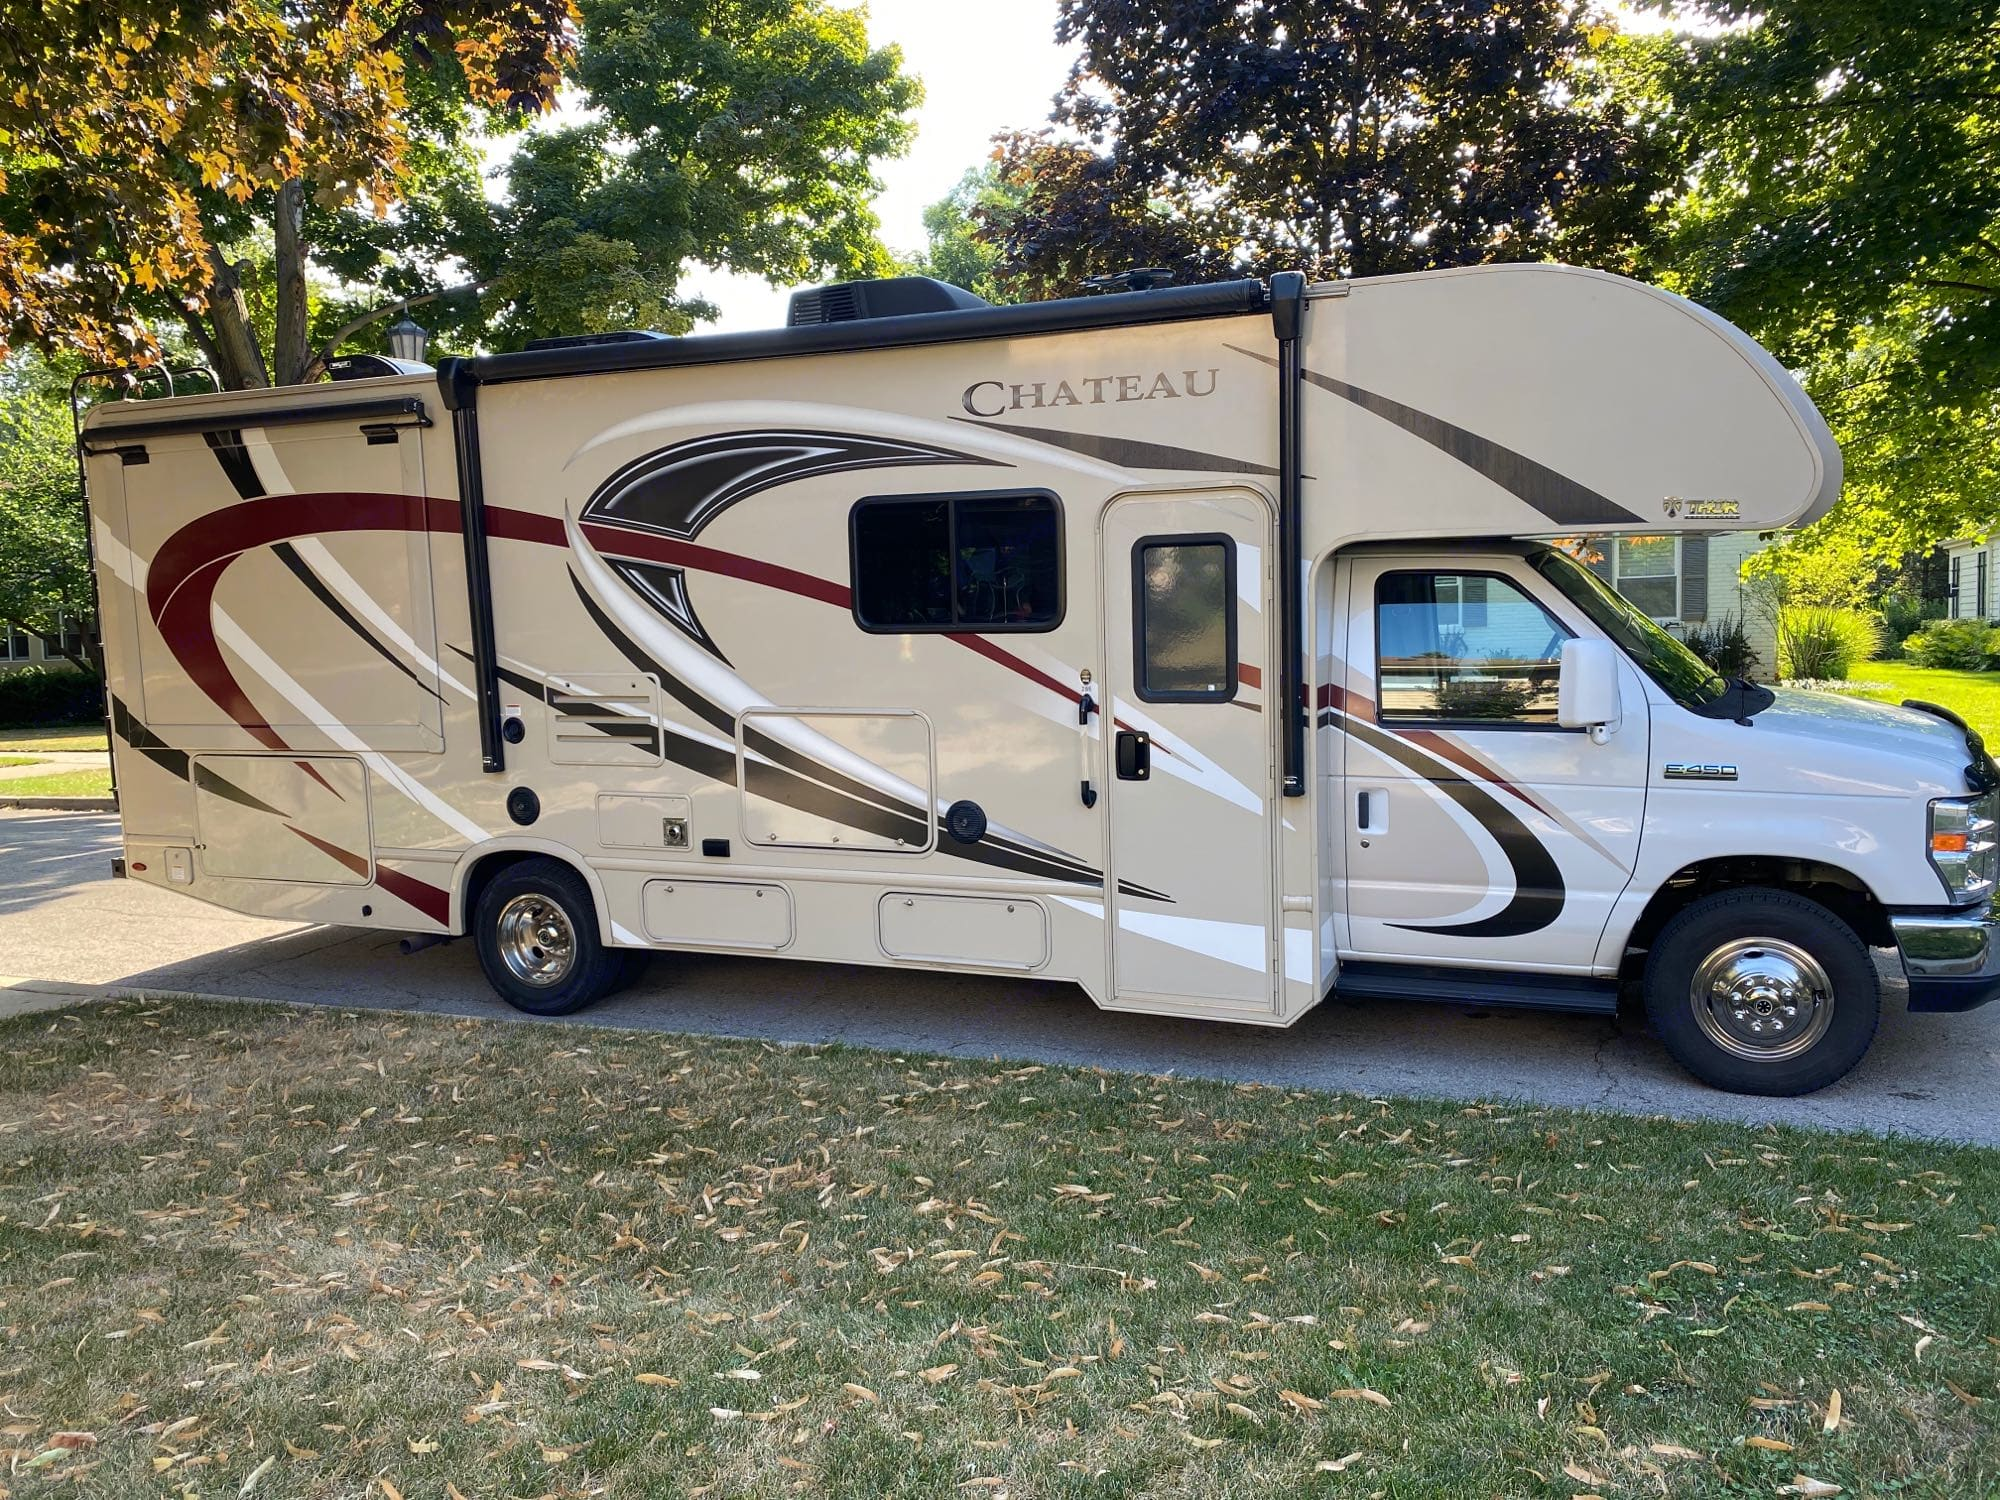 Baby Jane is 28 feet long and features 2 slide-outs for extra space.. Thor Motor Coach Chateau 2018